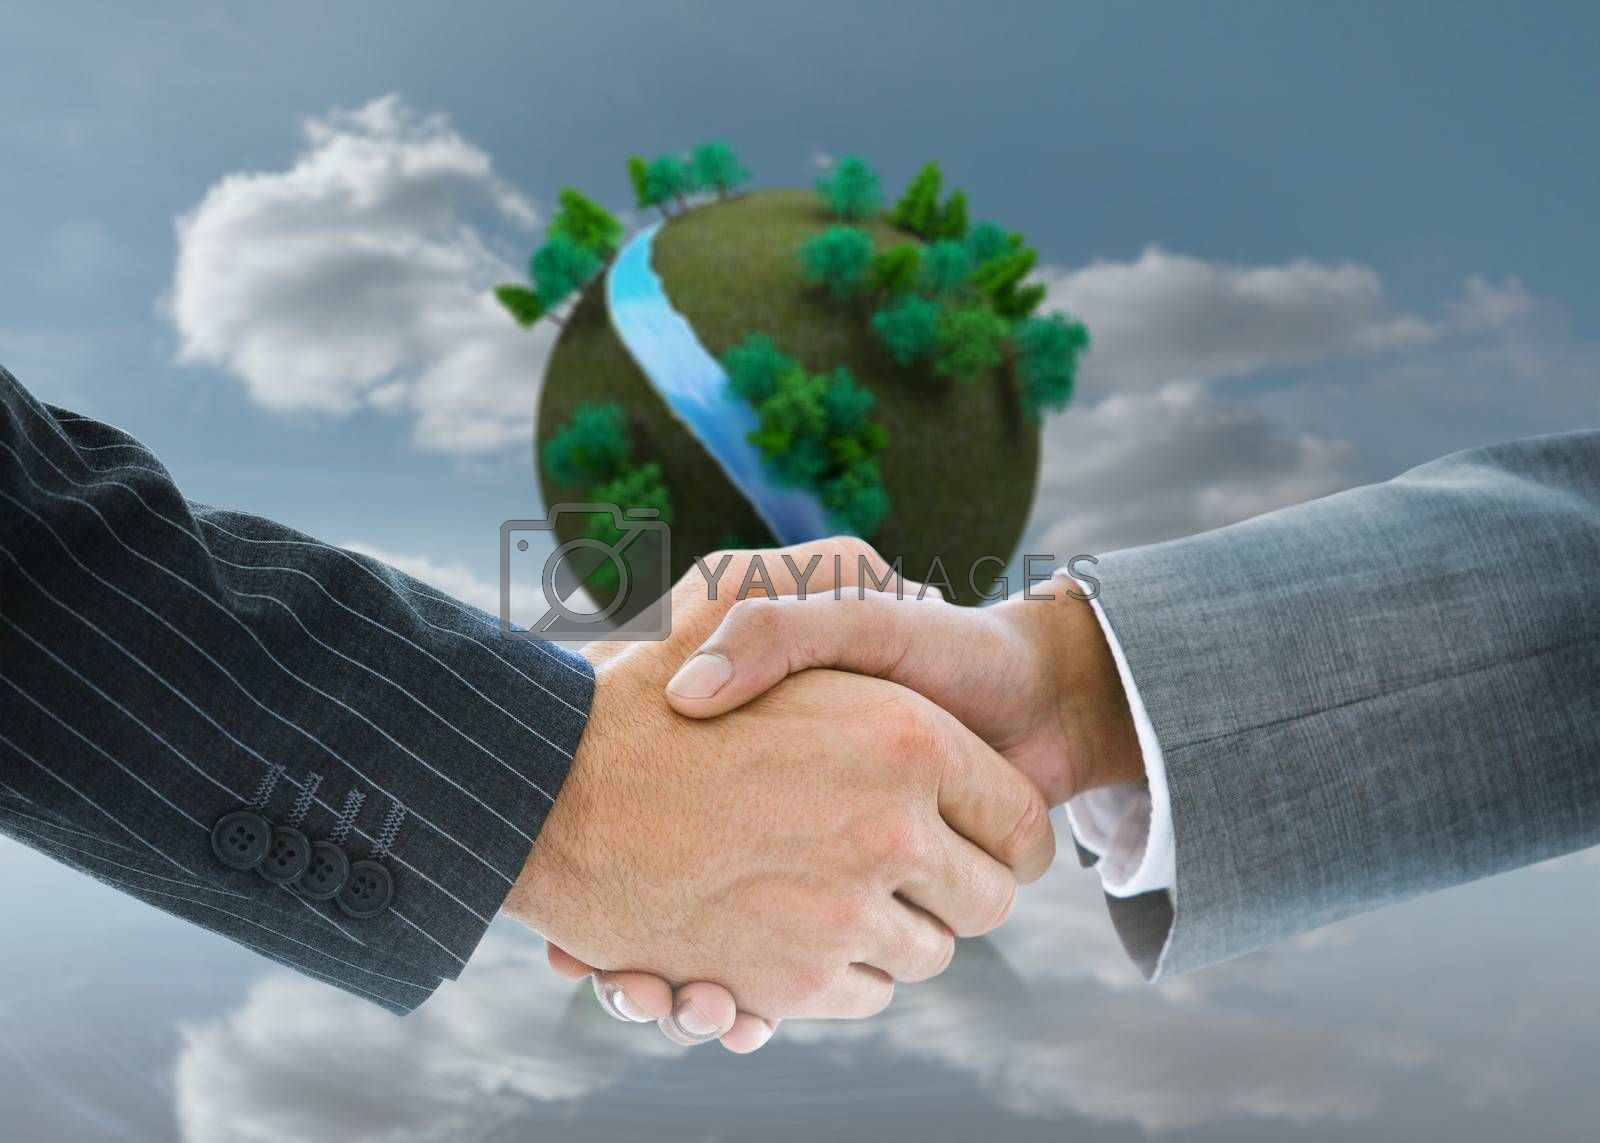 Composite image of business handshake by Wavebreakmedia